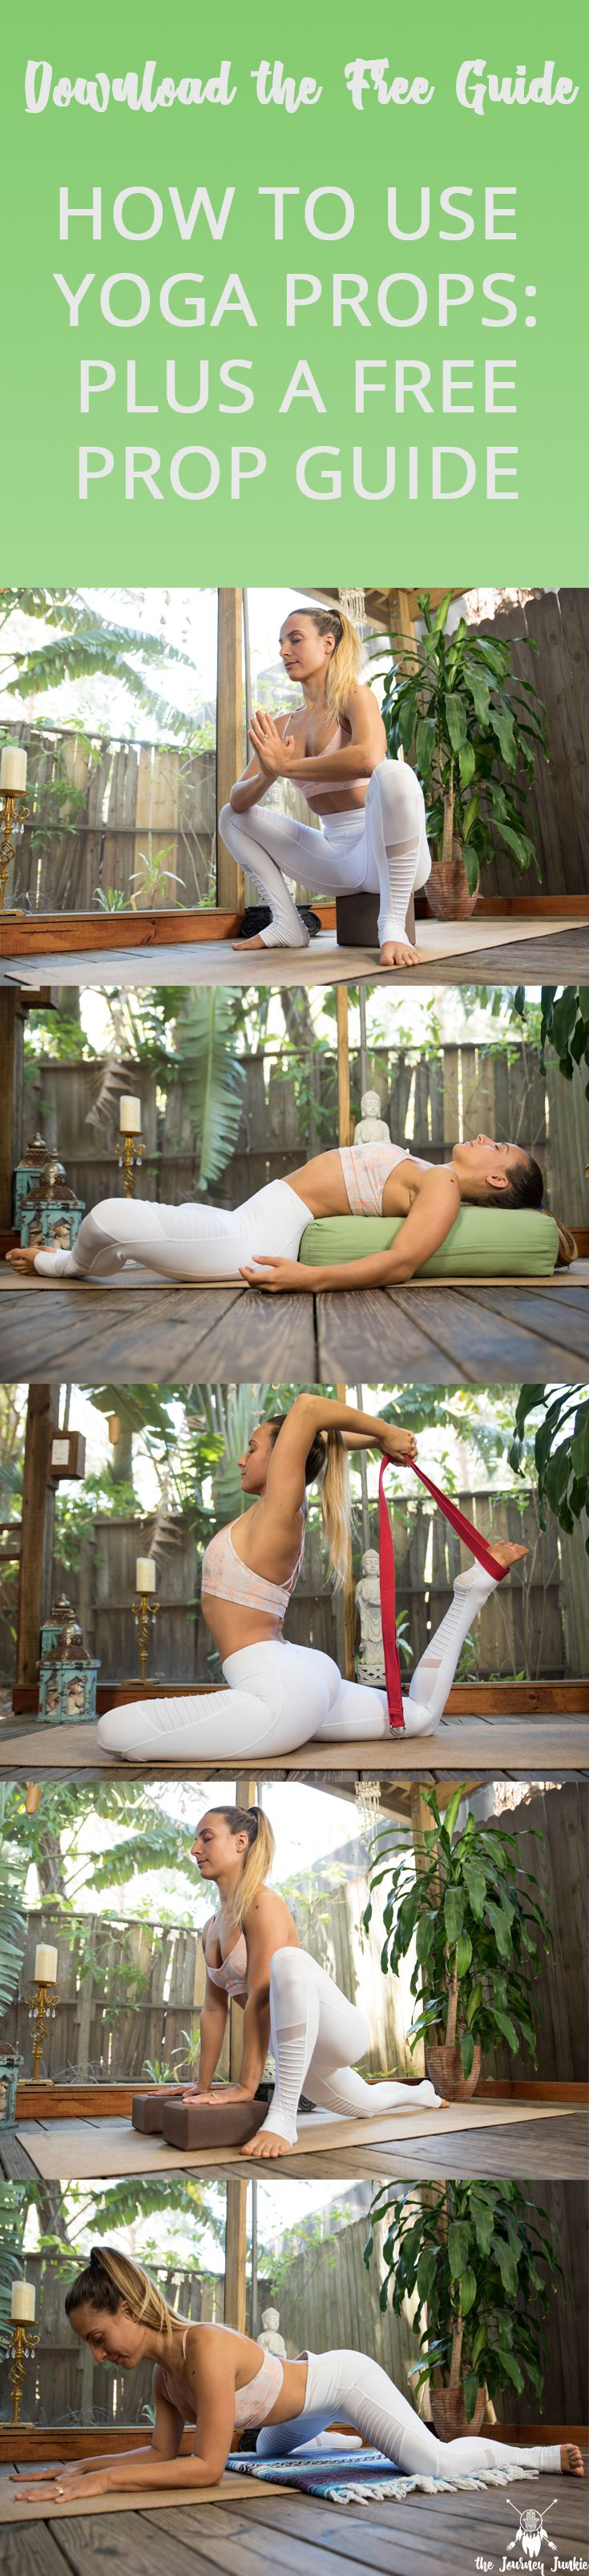 How to Use Yoga Props + a Free Yoga Prop Guide I Learn how to use my four favorite yoga props (blocks, bolster, blanket, strap) + download the free guide to help make every yoga pose accessible and enjoyable!